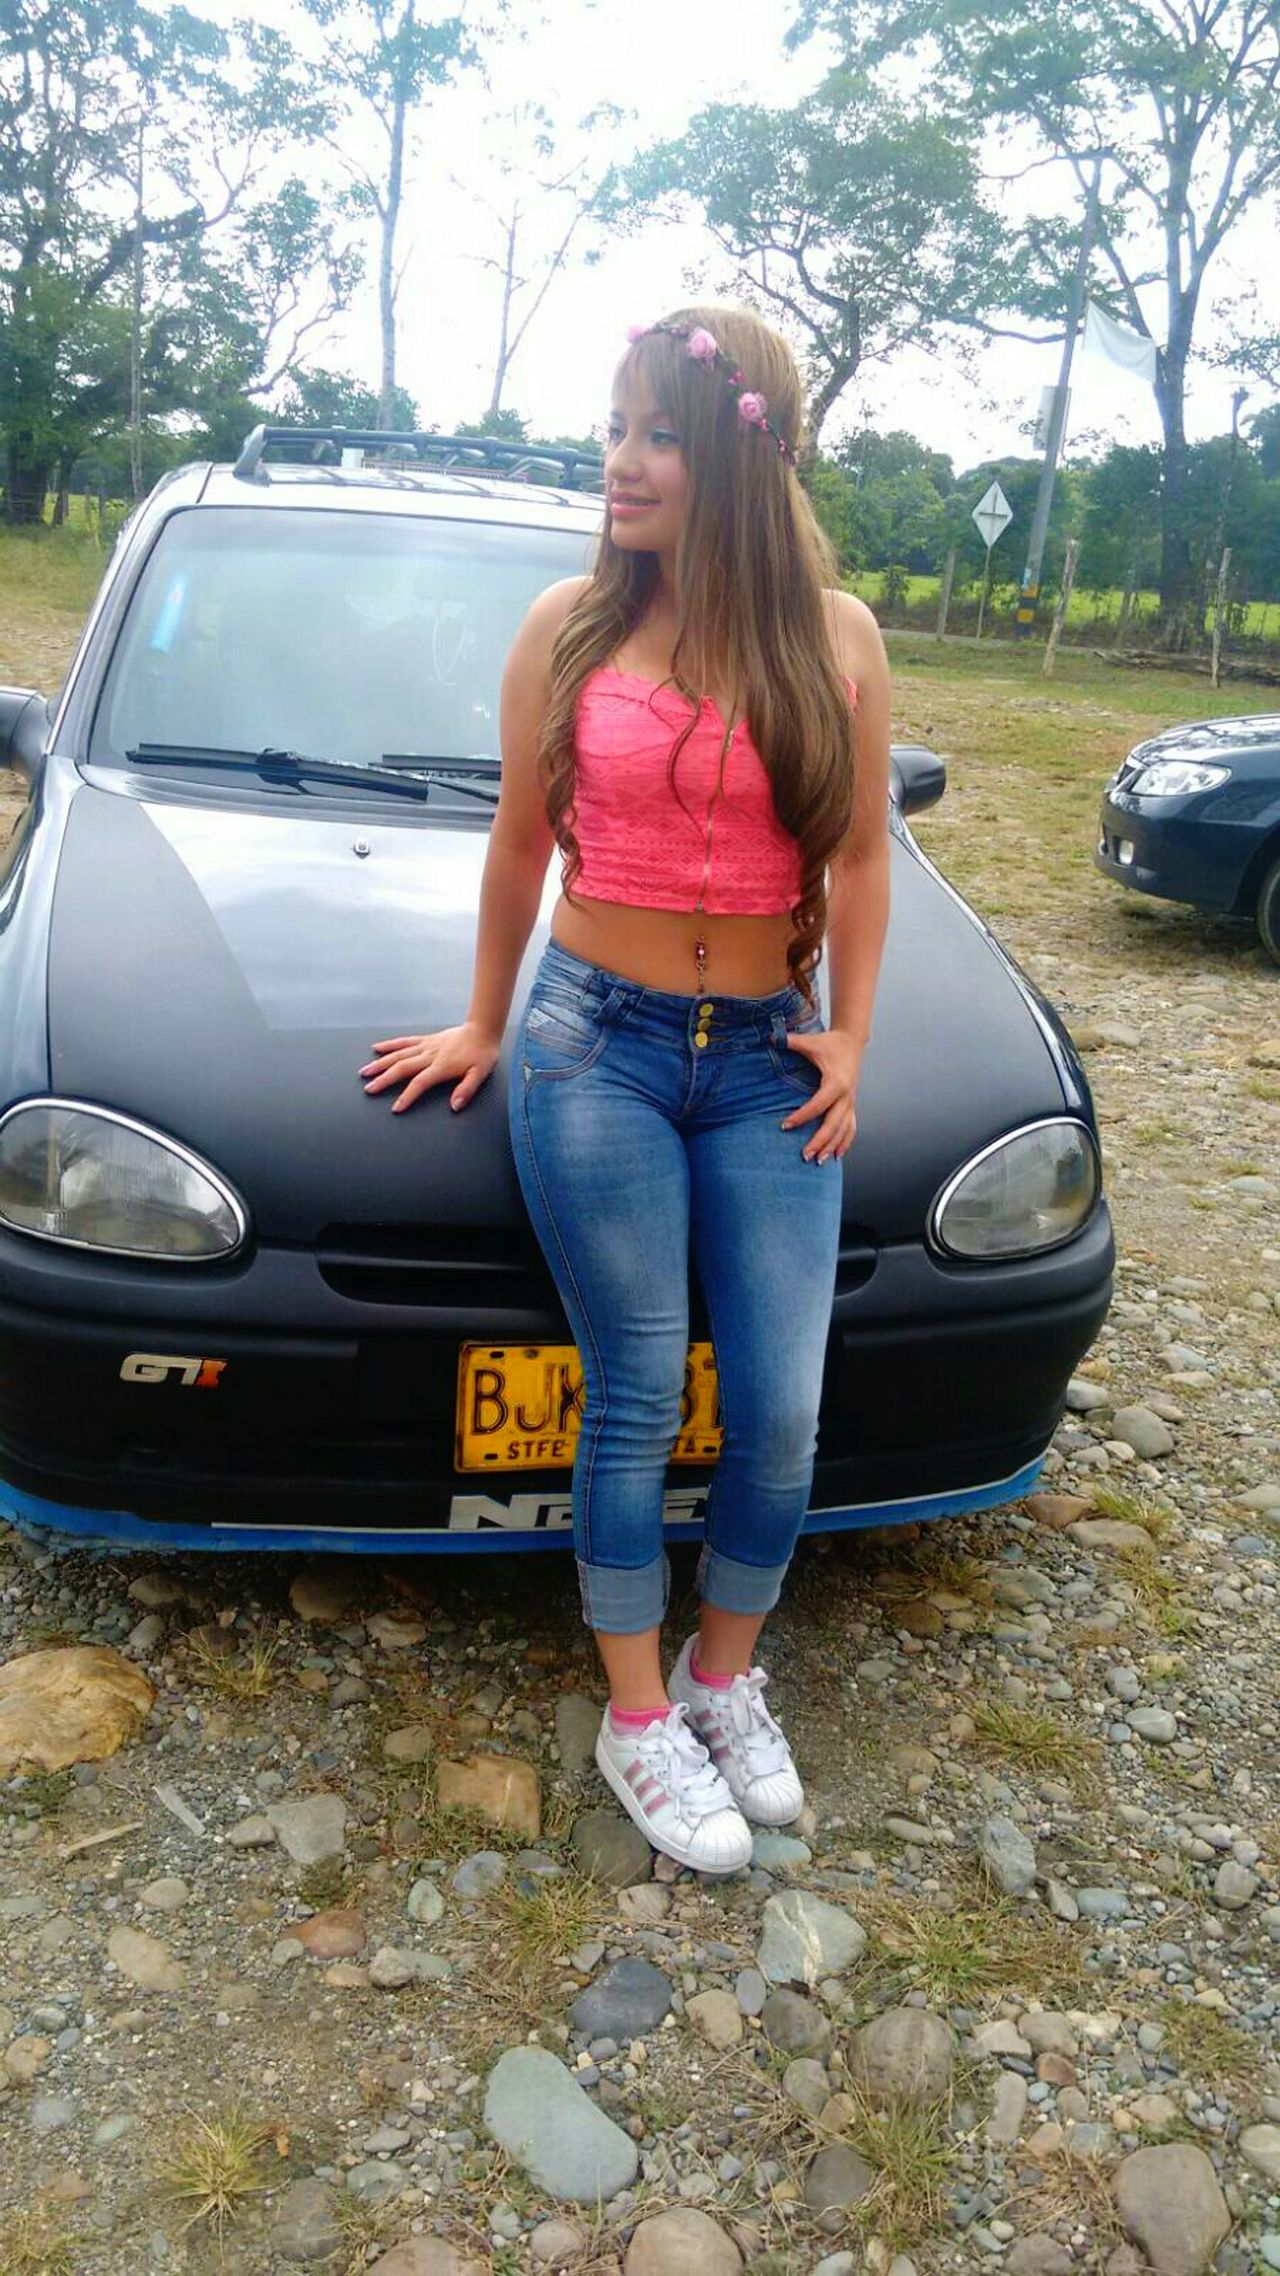 Carro Relaxing Latinalove Beautiful Girl Besitosparatodos LaPrincesita Qeen 👑 Sexylips Cabello 💕🙈👌 Sol Besito💋 Lips #love #smile #pink #cute #pretty